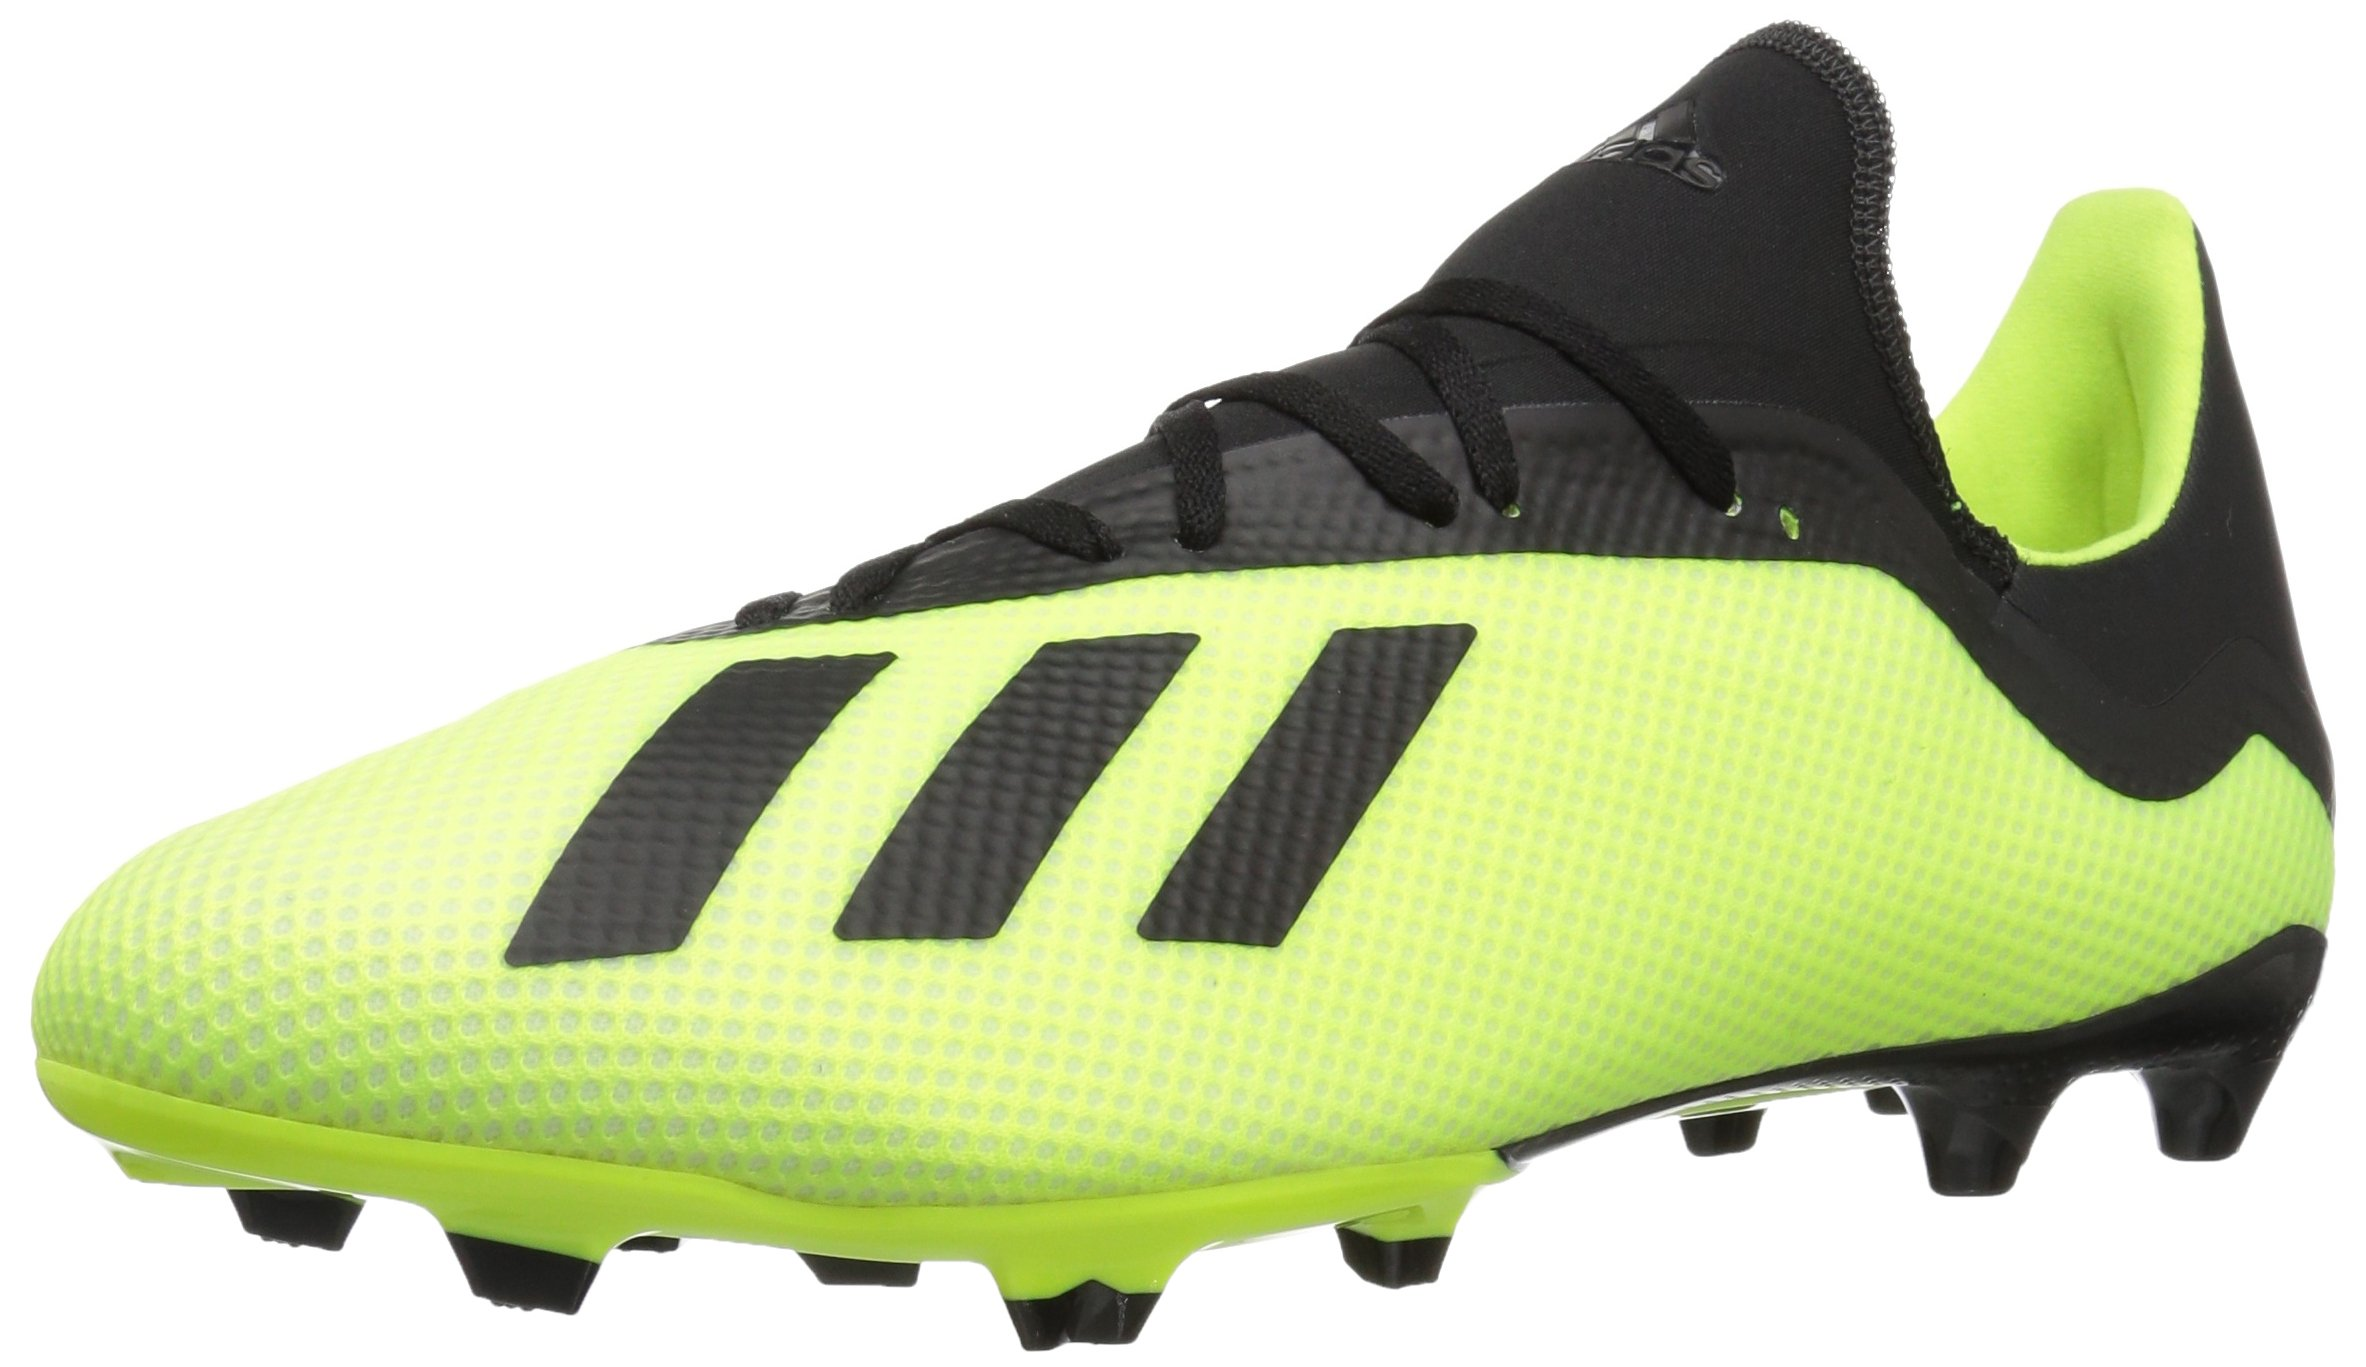 hot sale online ba39a 8ac29 adidas Men's X 18.3 Firm Ground Soccer Shoe, Solar Yellow/Black/White, 12 M  US